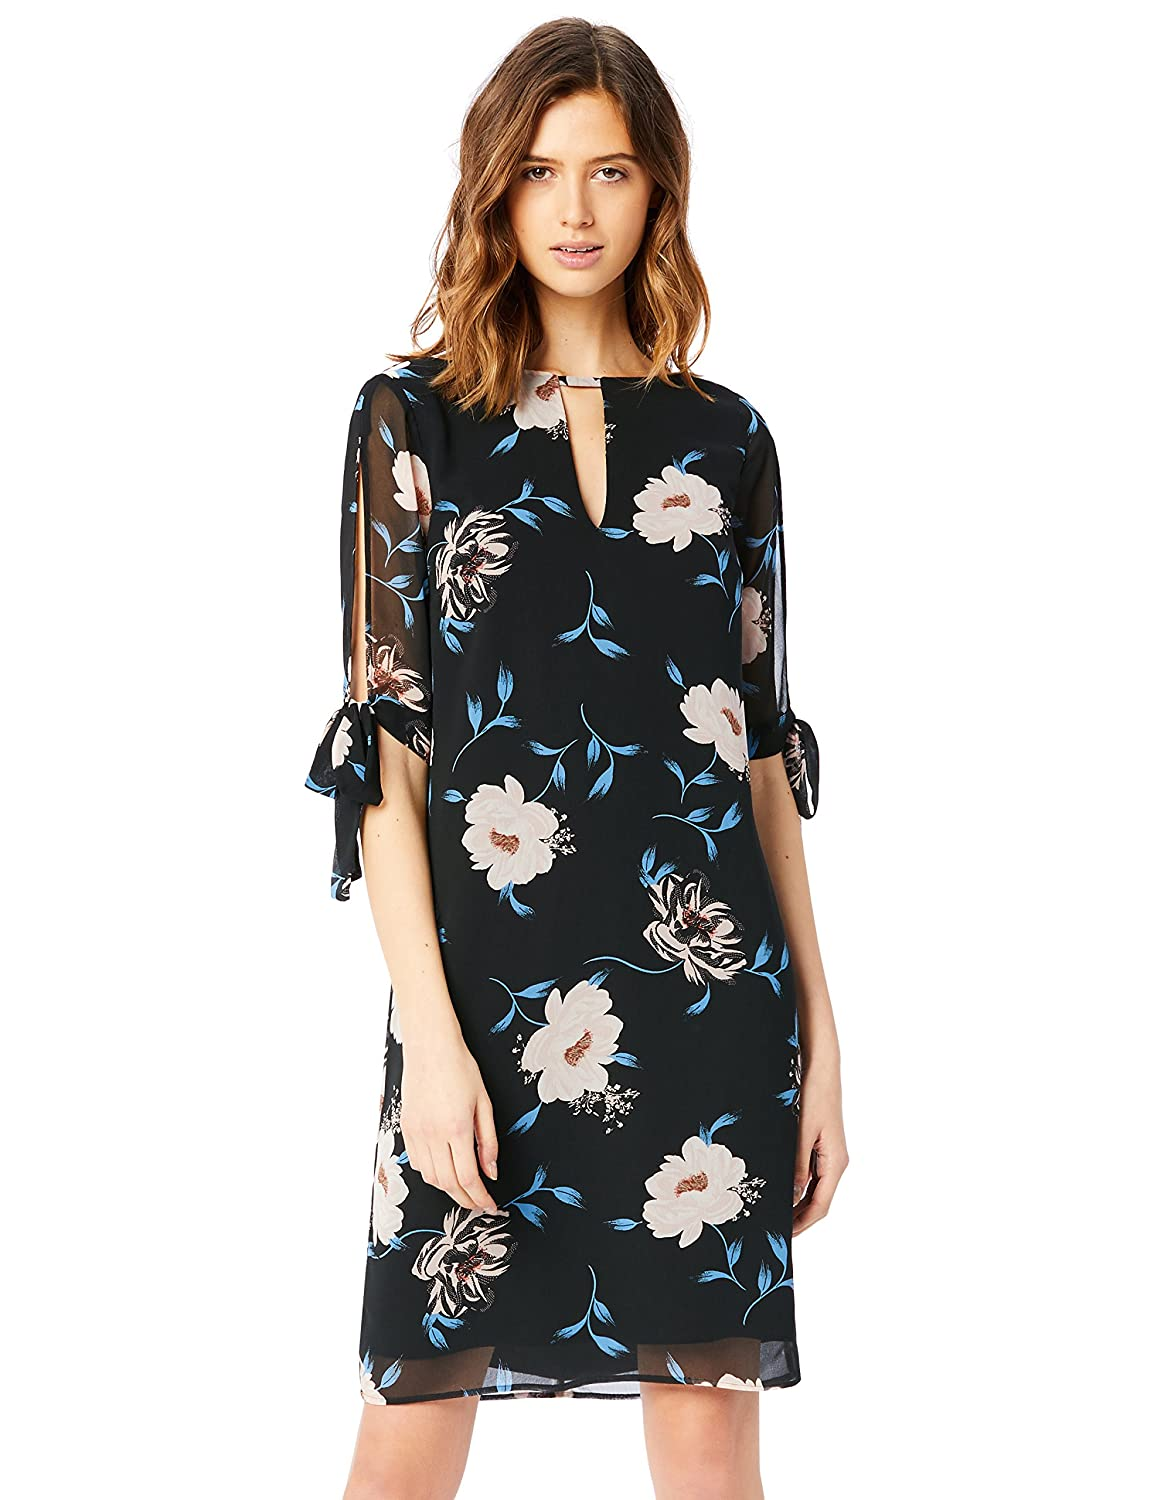 TALLA 40 (Talla del Fabricante: Medium). Marca Amazon - TRUTH & FABLE Vestido Evasé de Gasa Mujer Multicolor (Print) 40 (Talla del fabricante: Medium)